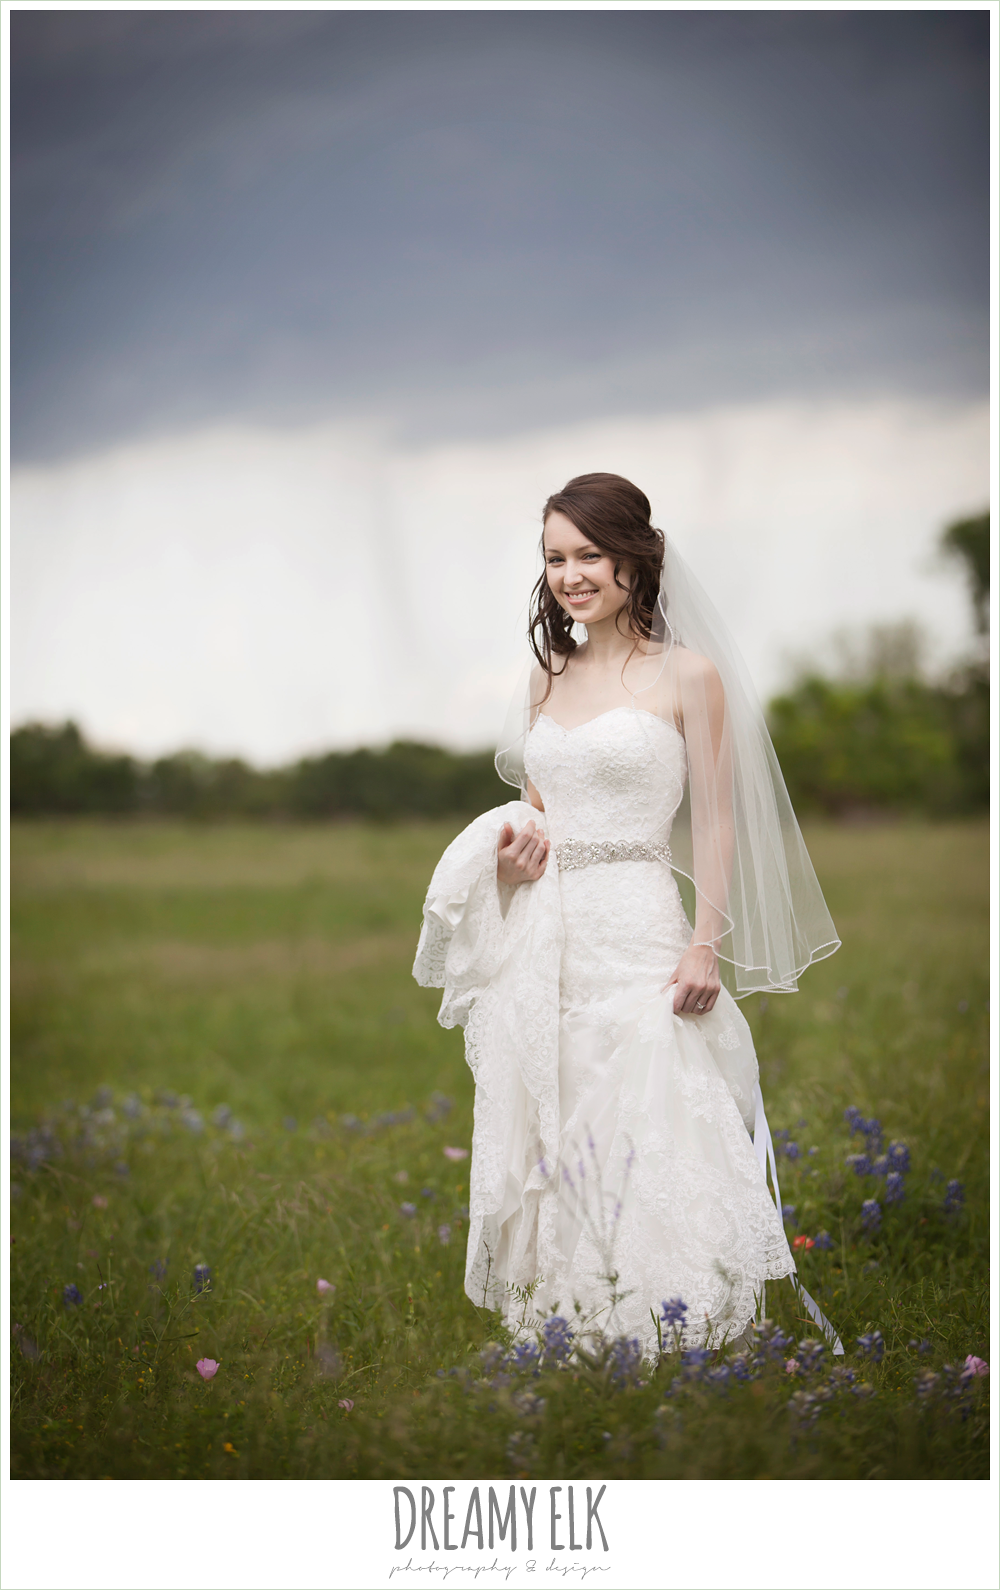 lace sweetheart strapless wedding dress, outdoor rainy day bridal photo in bluebonnets {dreamy elk photography and design}